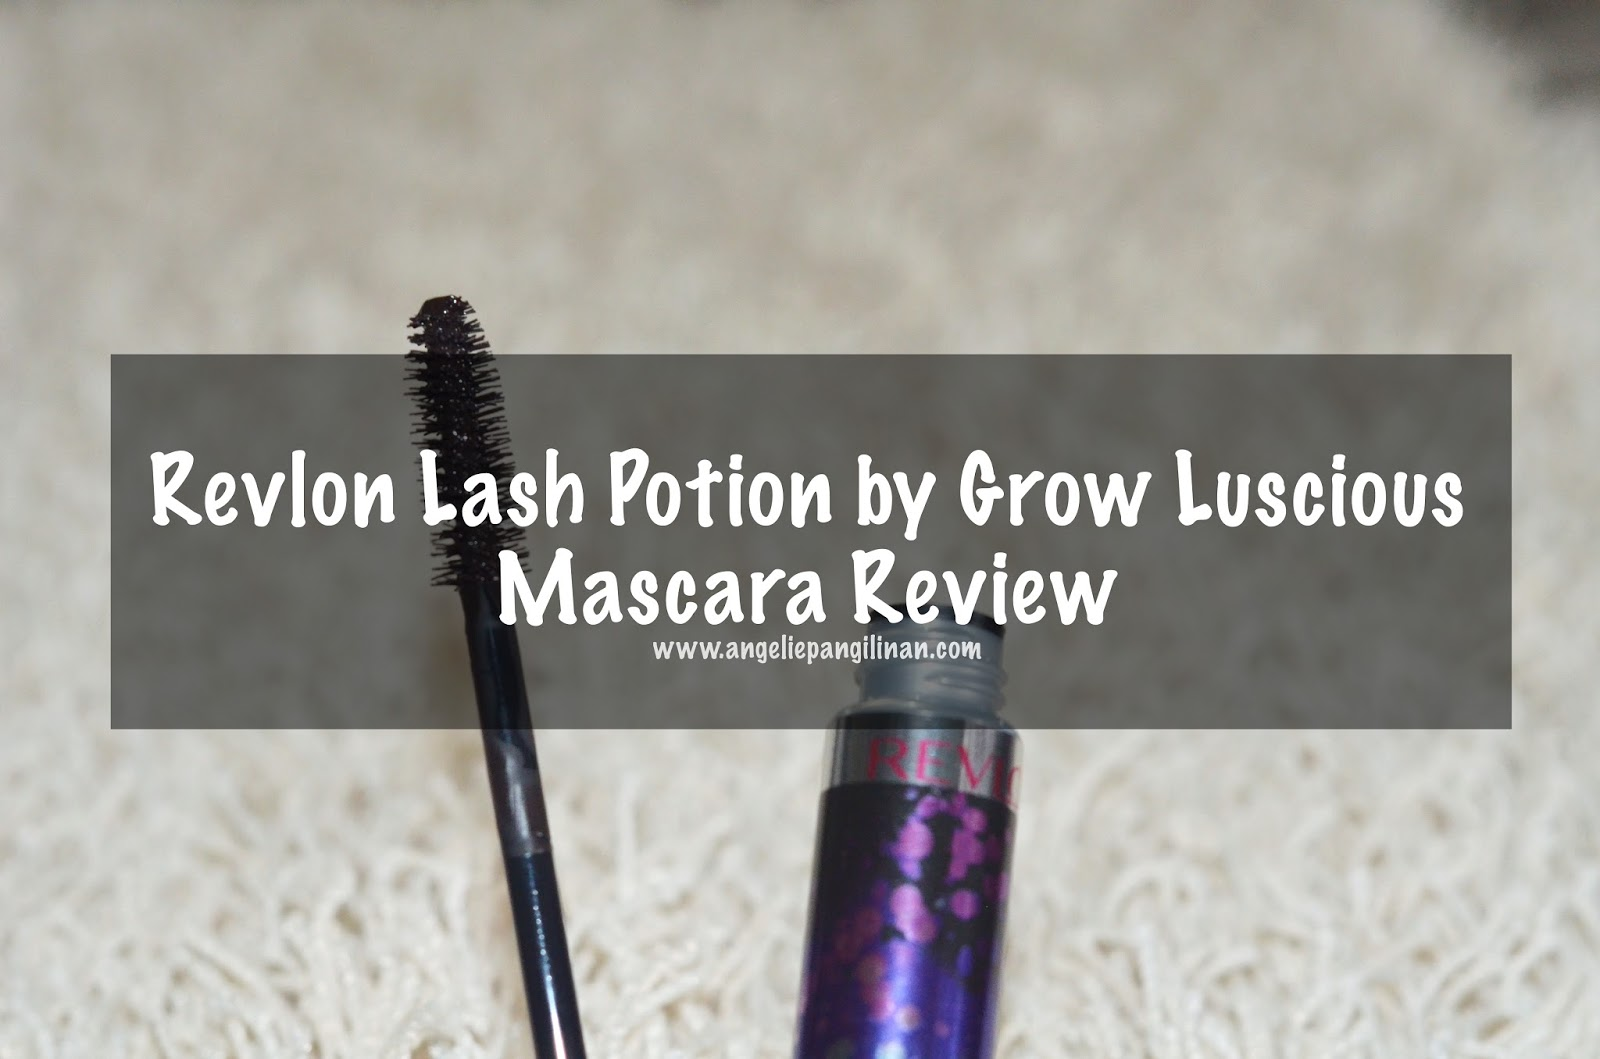 Revlon Lash Potion by Grow Luscious Mascara Review